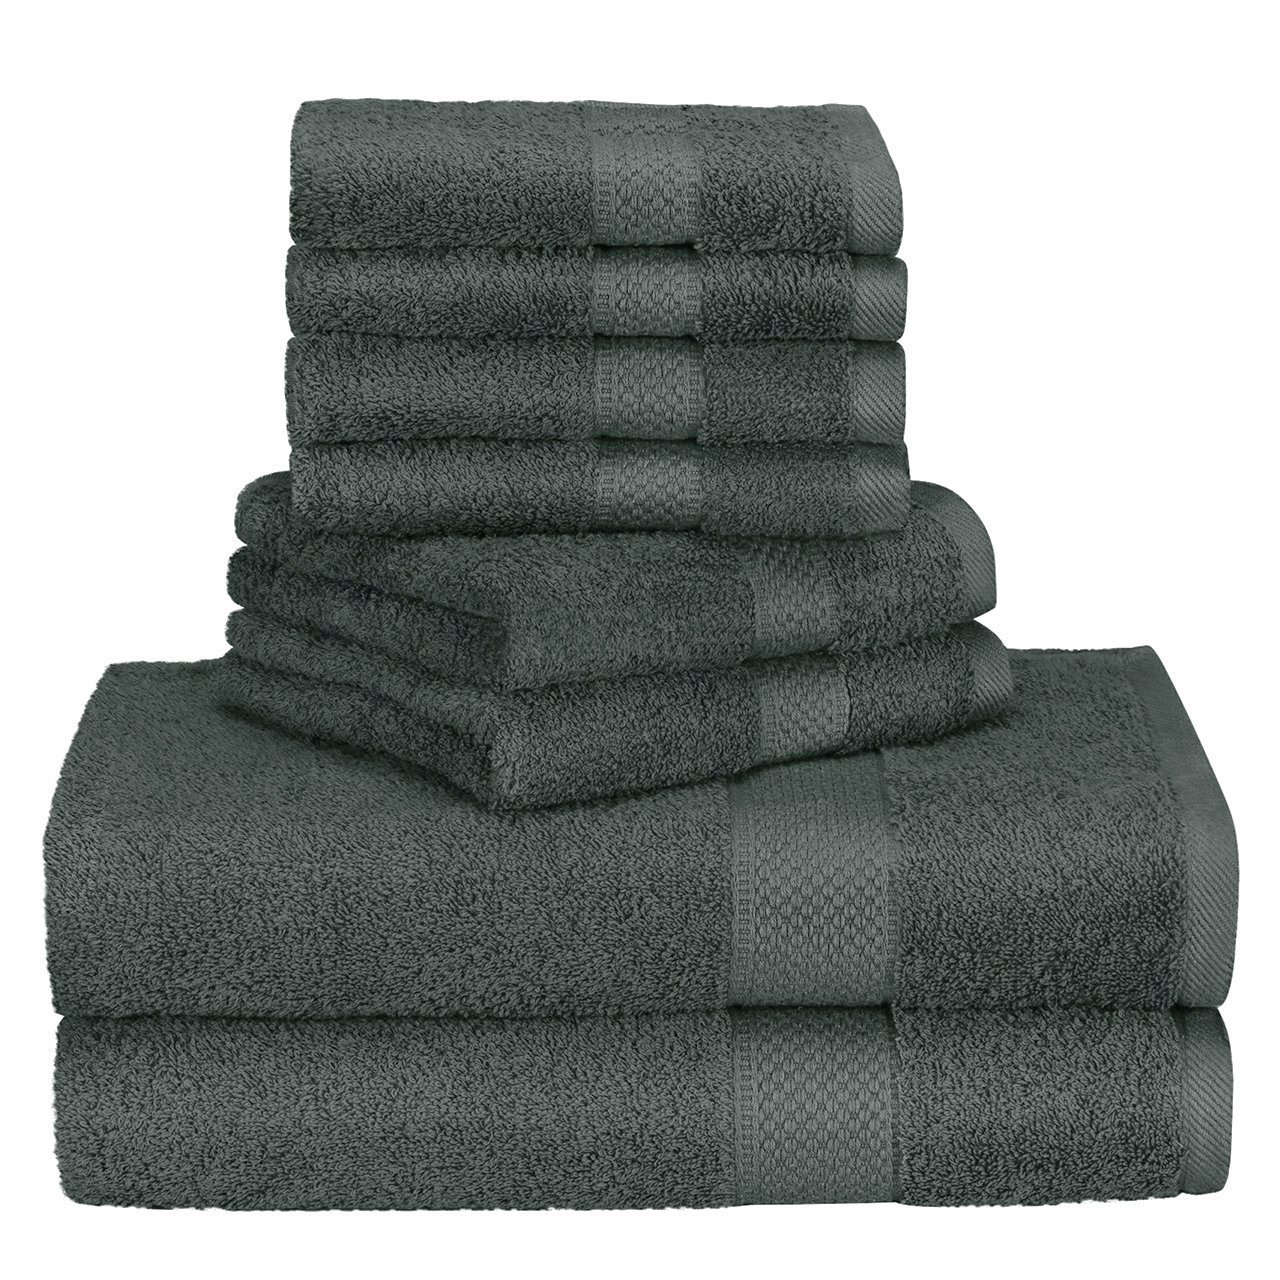 Homitt 100% Cotton 8 Piece Towel Set, Fade-Resistant and Anti-lint Washcloth Set with 2 Bath Towels, 2 Hand Towels and 4 Washcloths for Baby and Adult(Grey) HT-TS01